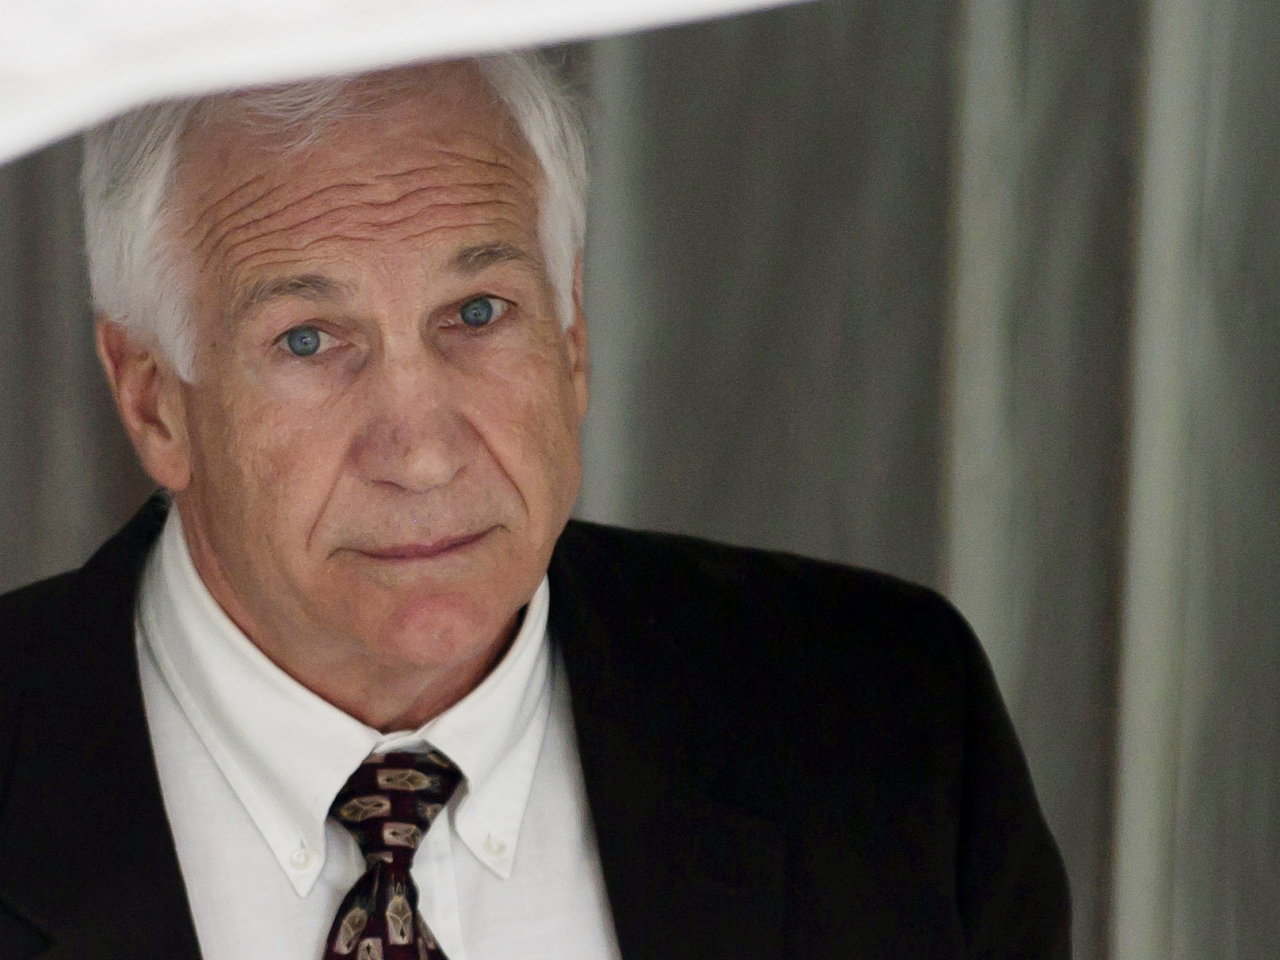 jerry sandusky case Jim clemente (retired fbi and current criminal minds writer/producer) goes in depth on the case of jerry sandusky and the extent of joe paterno's involvement.